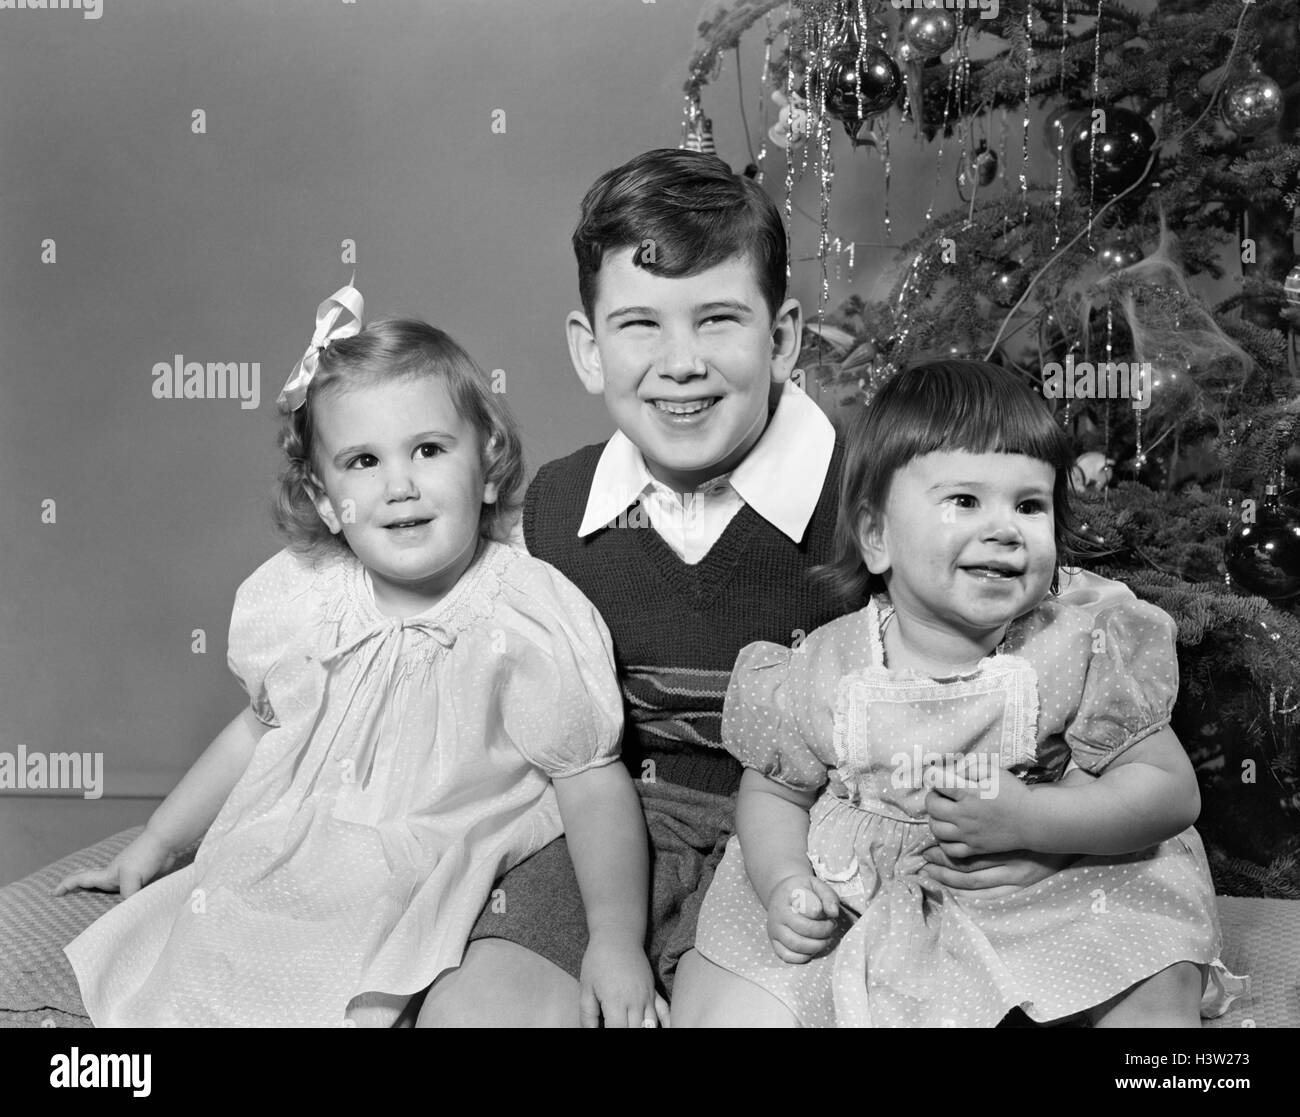 1950s Christmas Children Stock Photos Amp 1950s Christmas